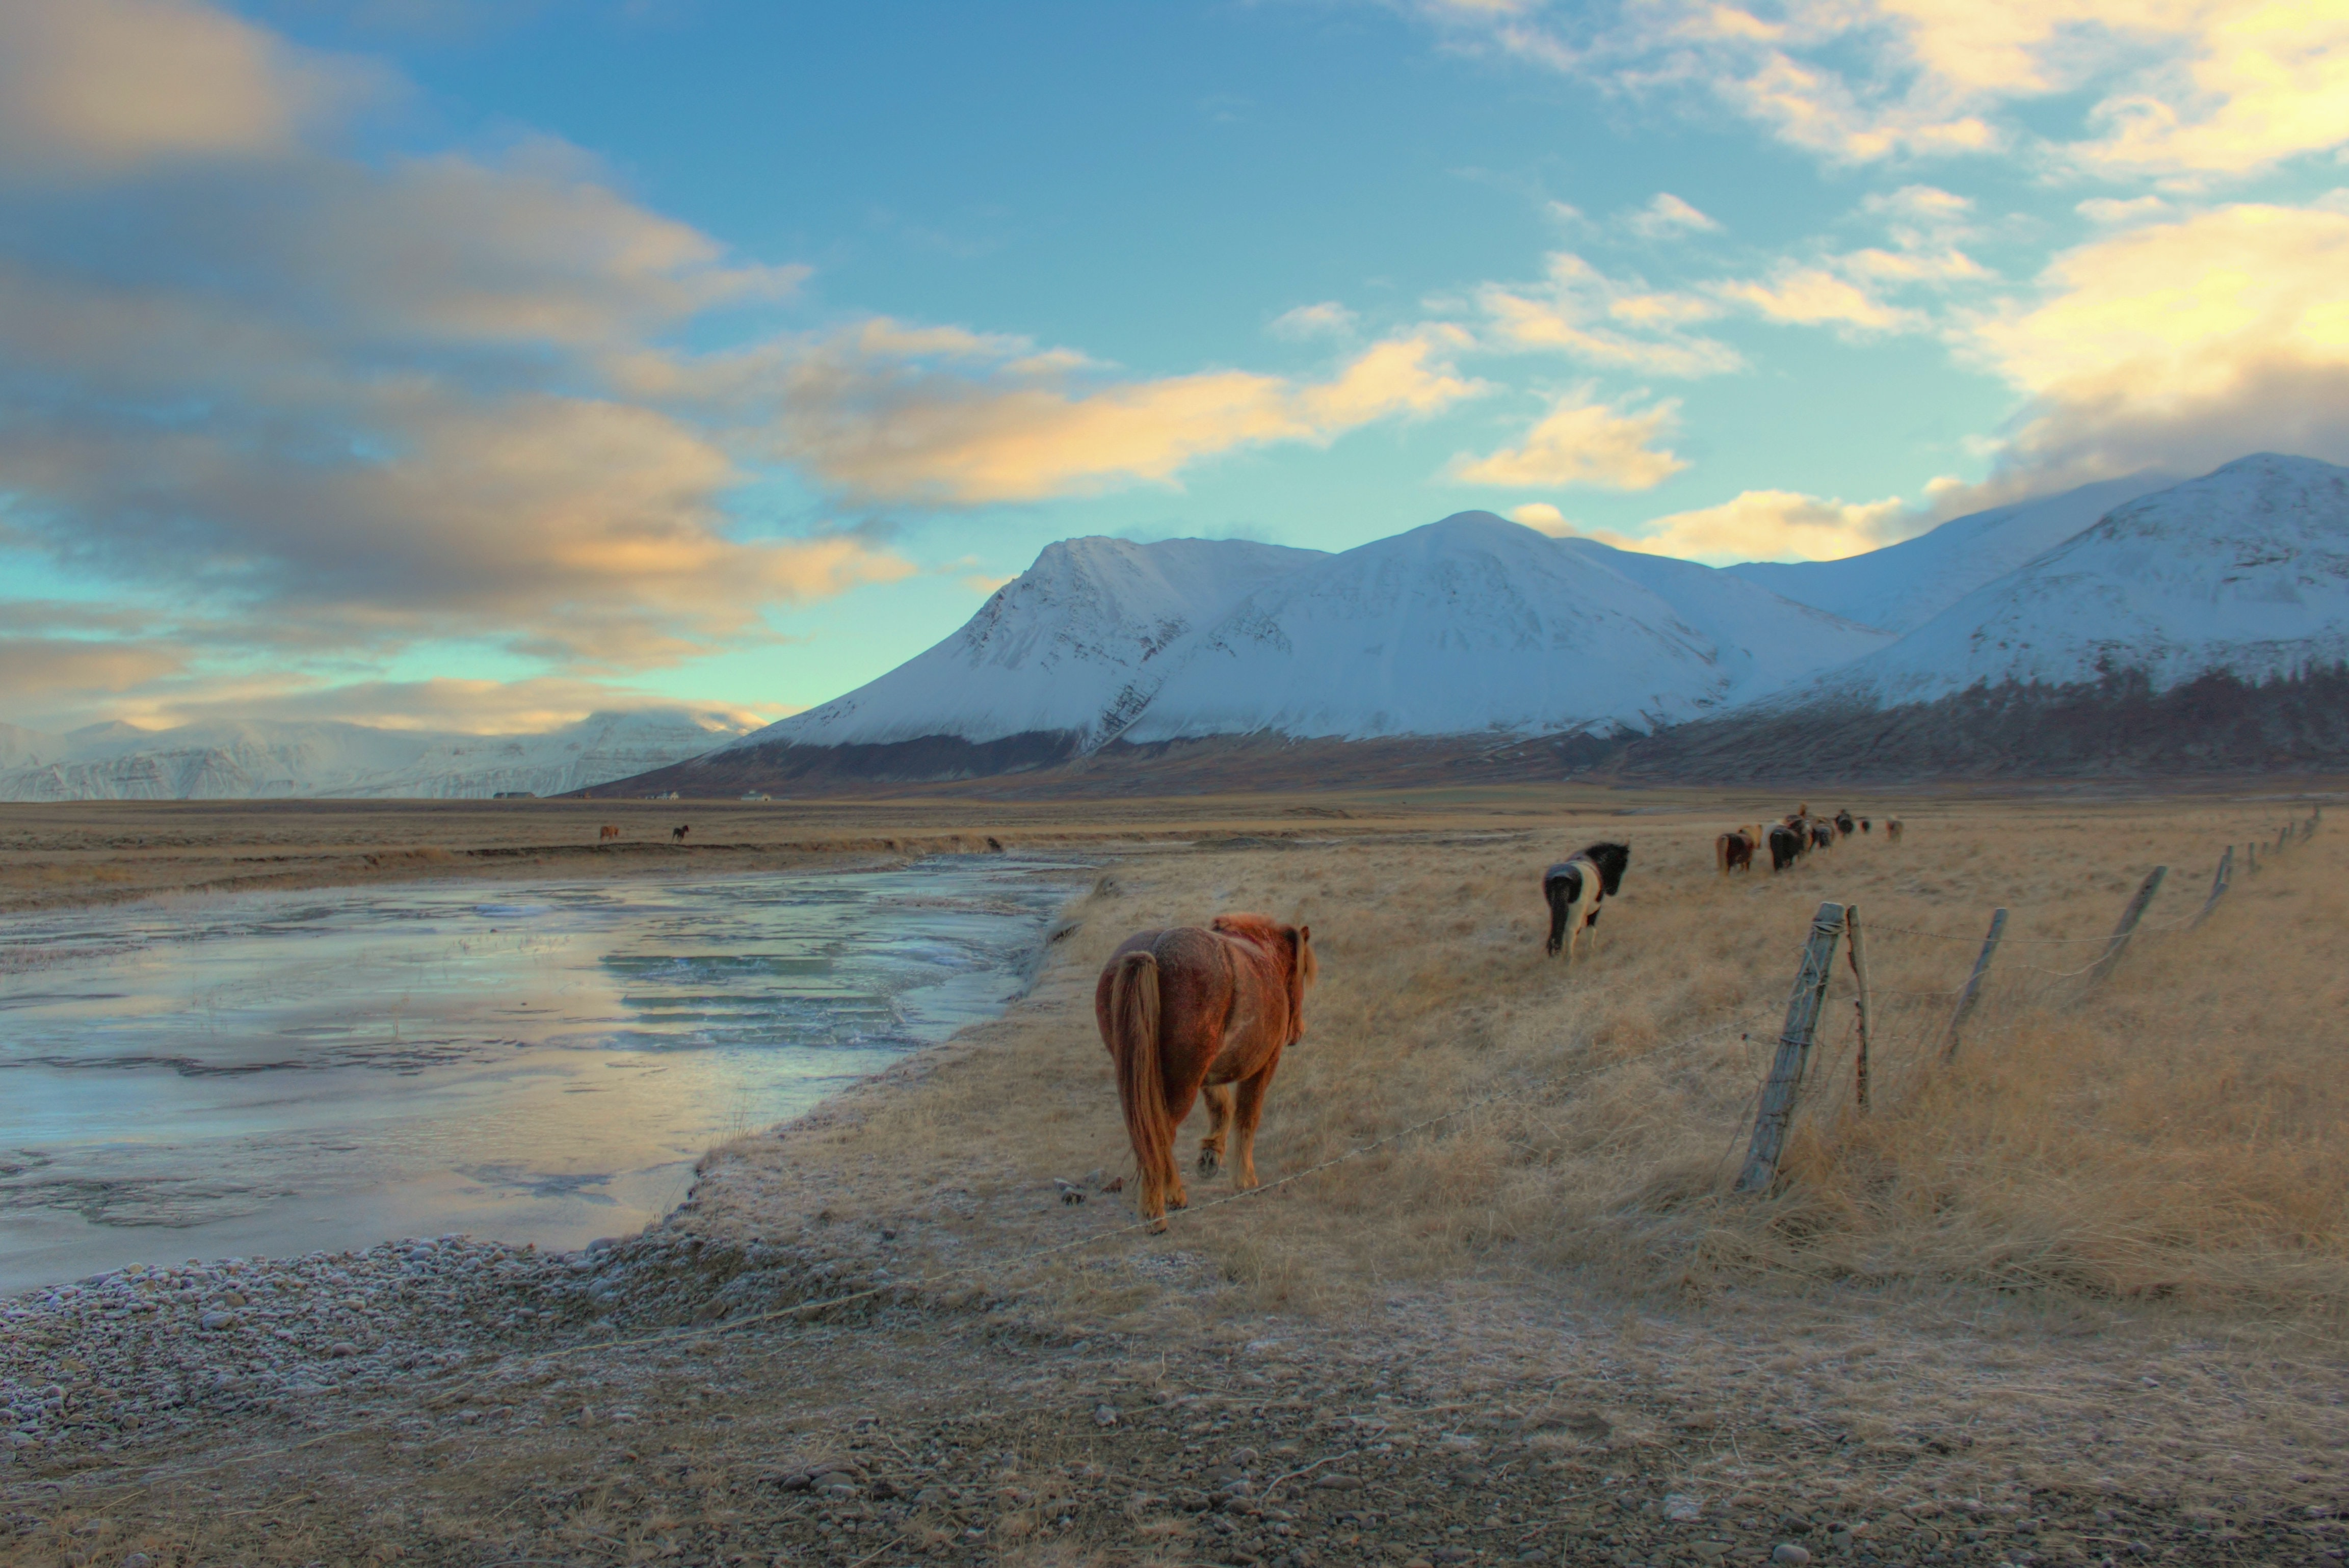 A head of horses walking in line between a wire fence and a small body of water